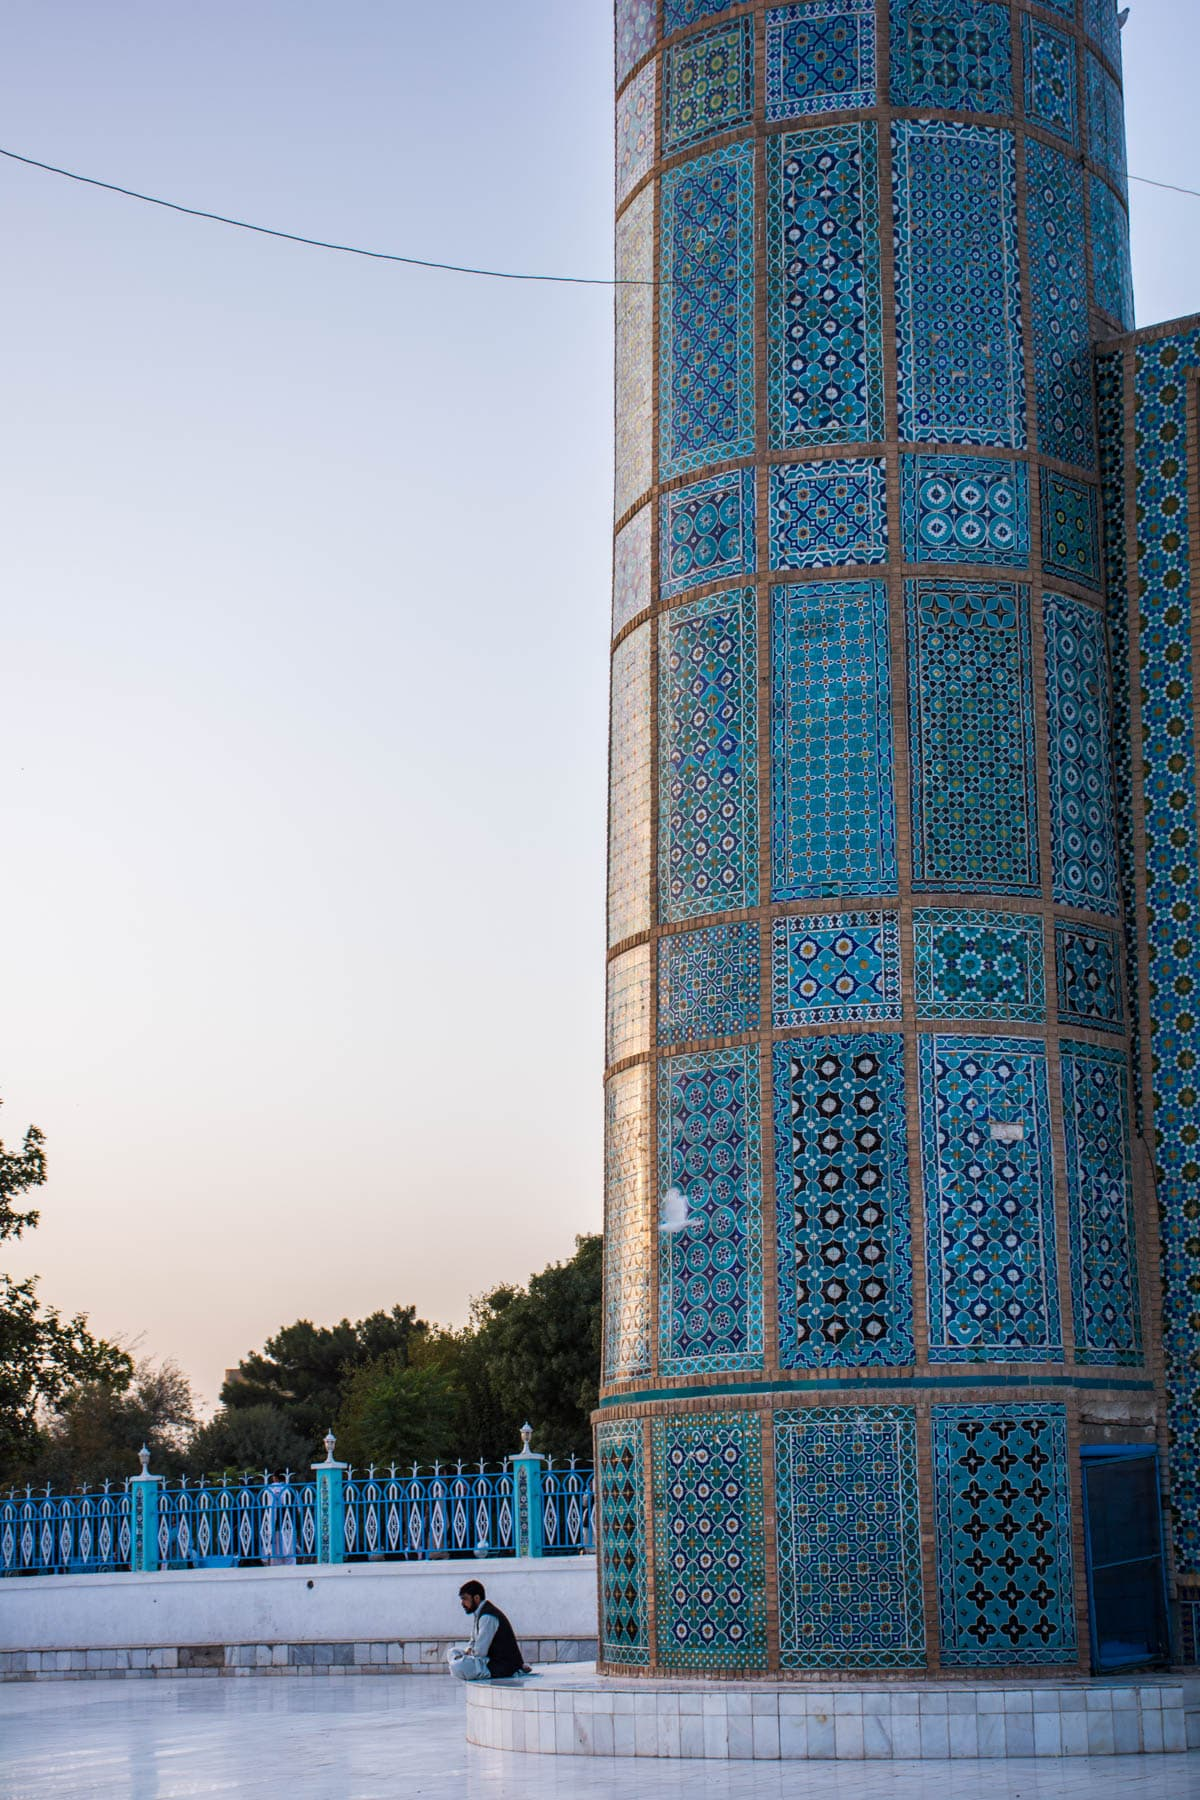 A man sitting contemplatively at the foot of a minaret of the Blue Mosque in Mazar-i-Sharif, Afghanistan, at sunset.